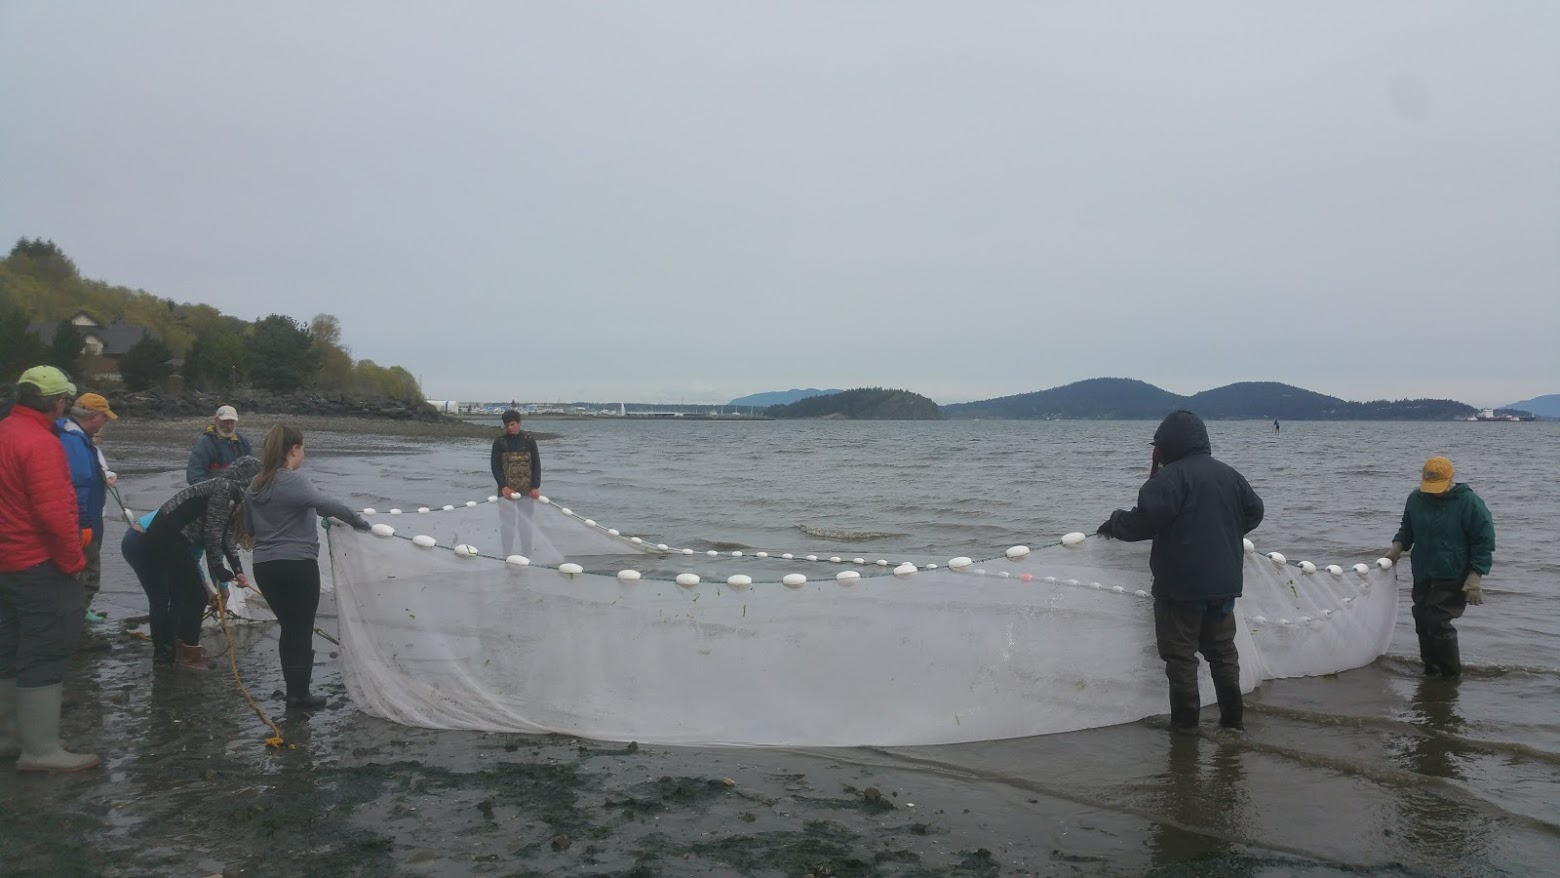 Conway School students beach seining to see if beach restoration is helping fish in Fidalgo Bay, WA